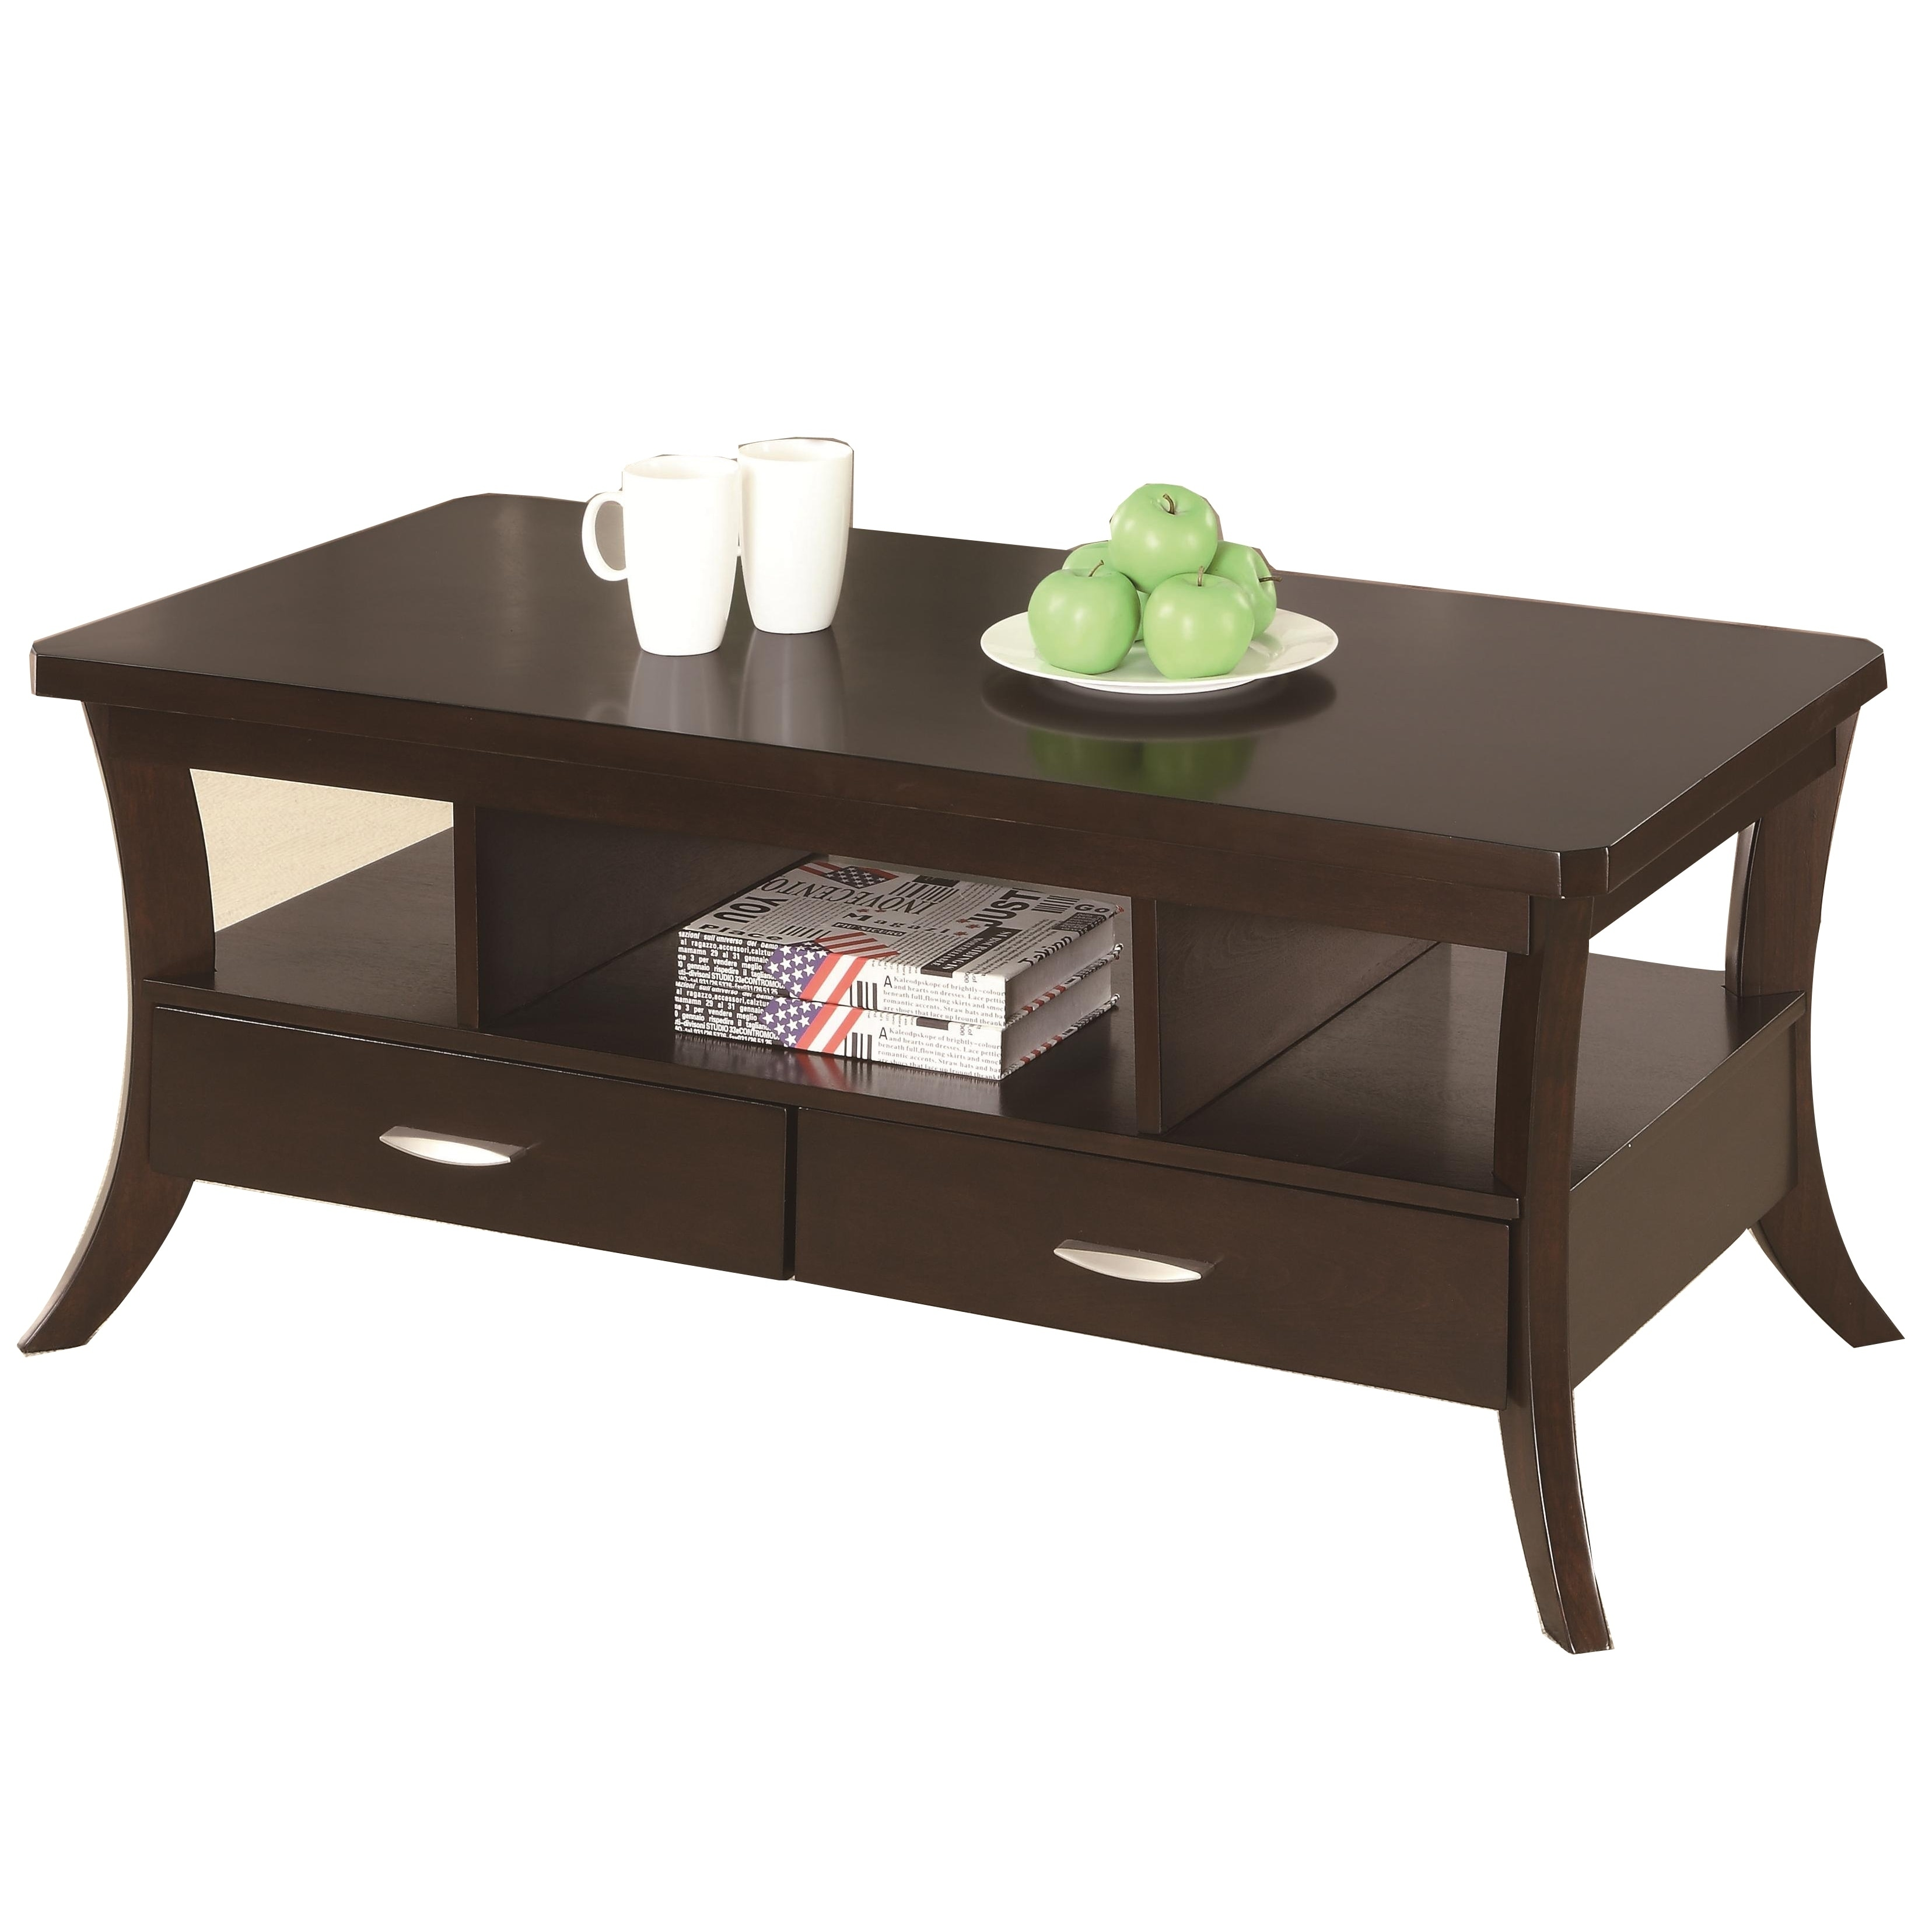 Incredible Contemporary Coffee Table With 2 Bottom Drawers Open Forskolin Free Trial Chair Design Images Forskolin Free Trialorg